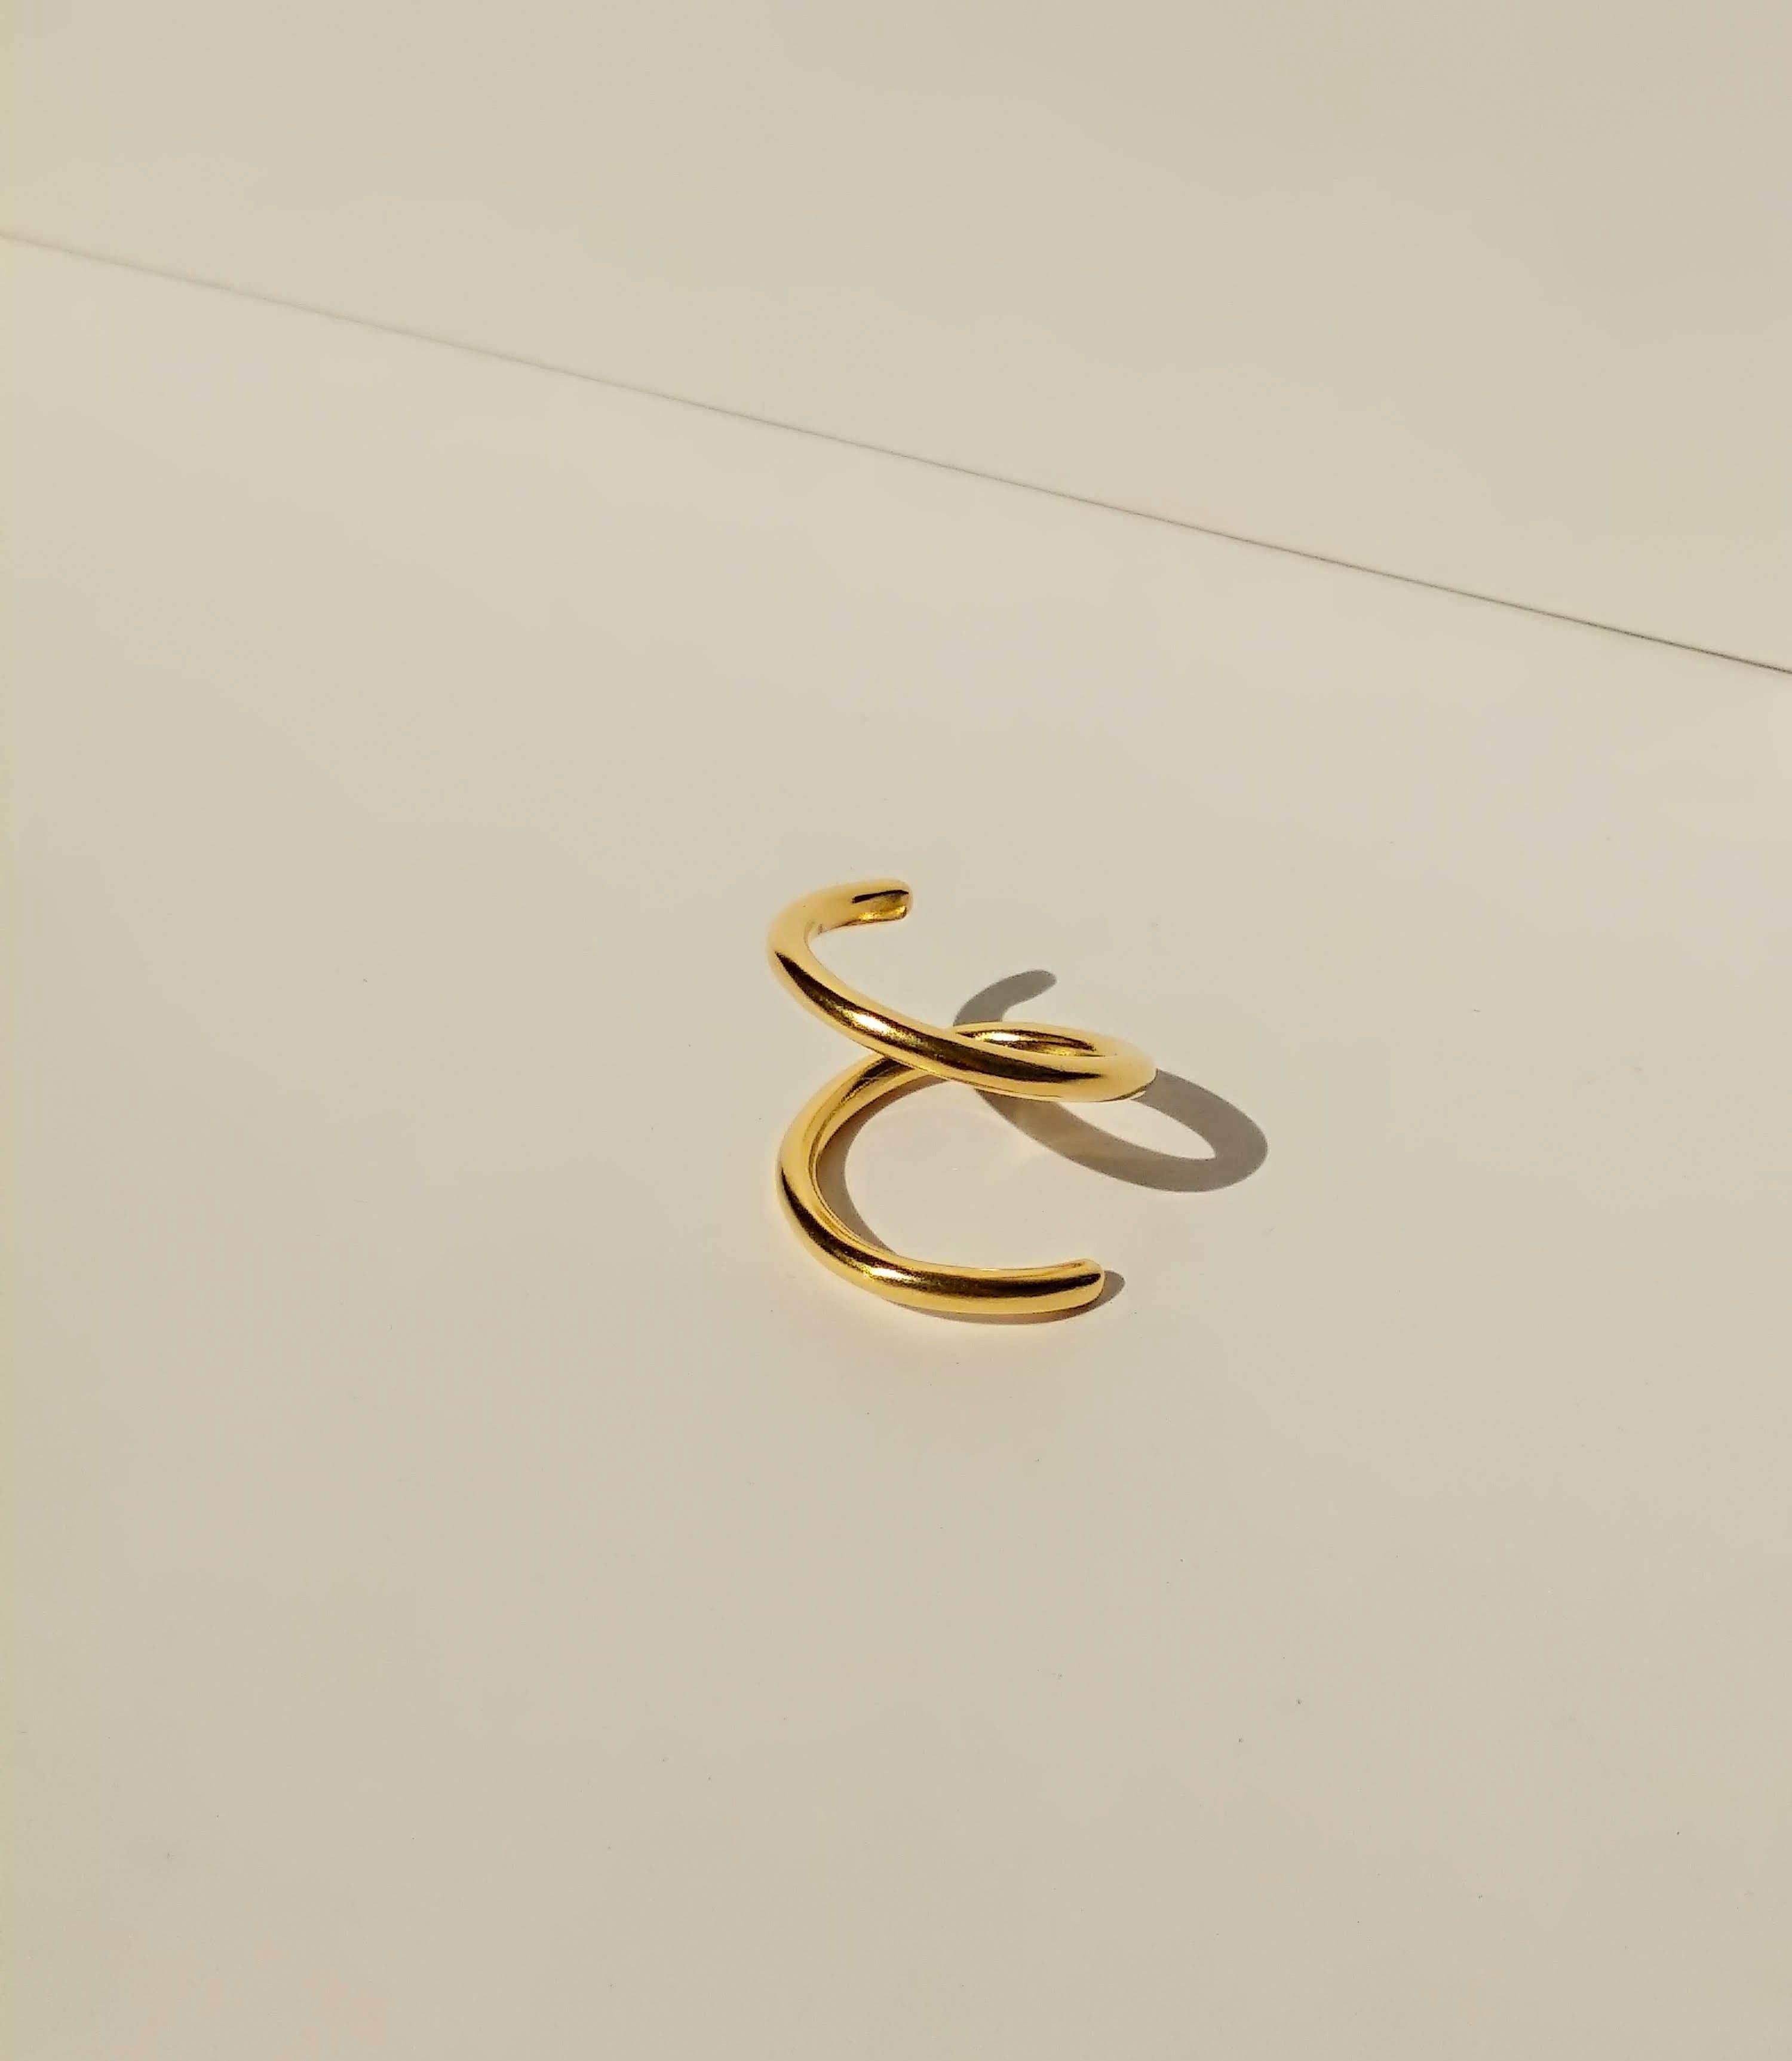 24K Gold Plated Swirl Ring | Double Band Ring